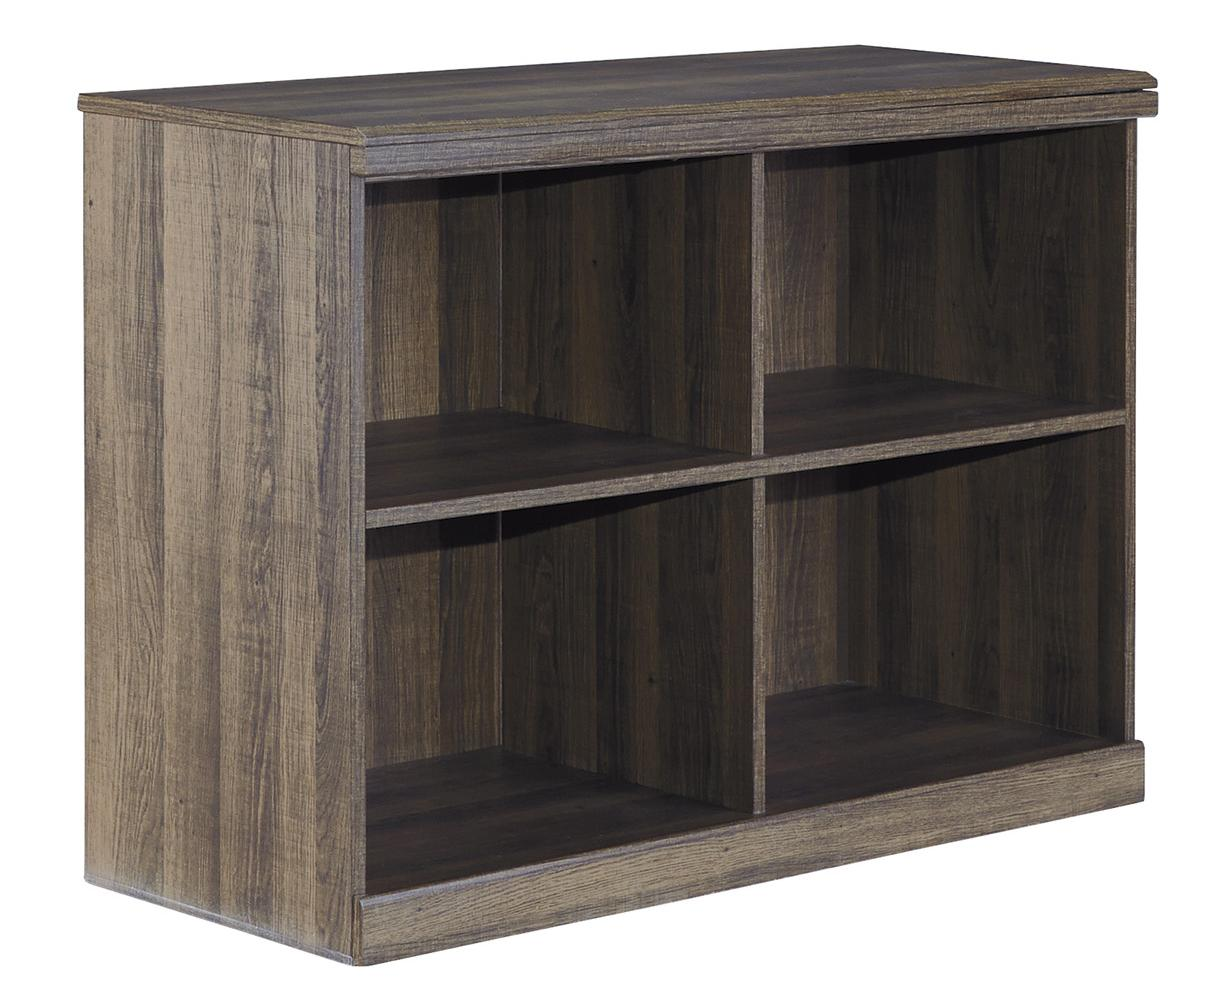 Signature Design by Ashley Juararo Loft Bookcase - Item Number: B251-17